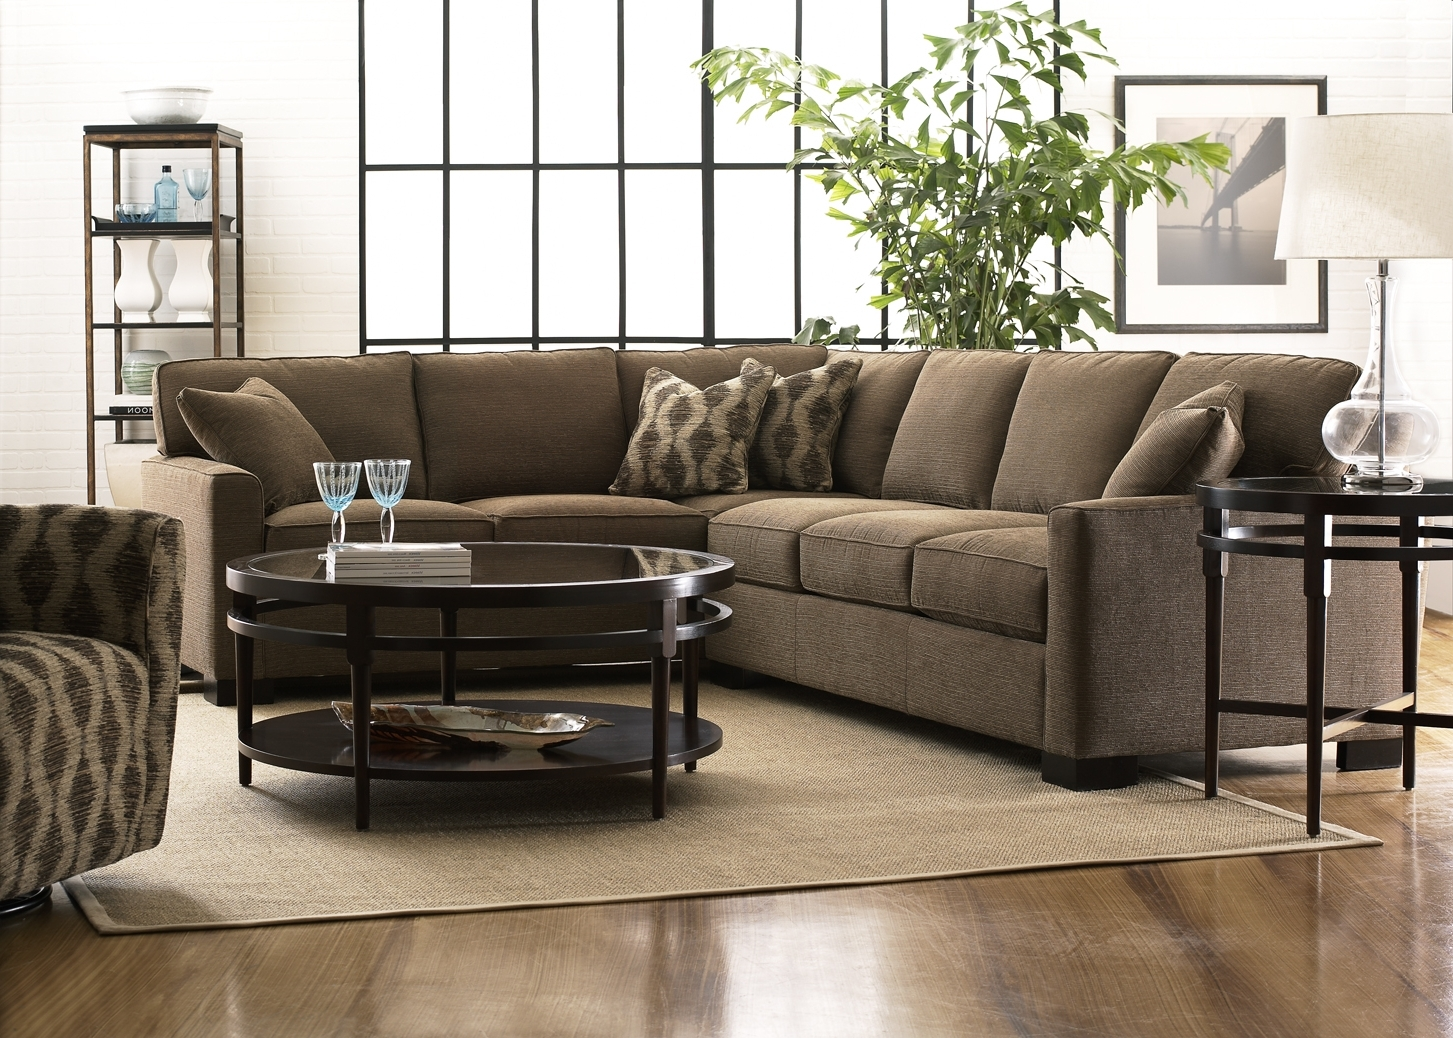 Well Known Sectional Sofas For Small Spaces With Recliners Pertaining To Dining Room Furniture Small Spaces Apartment Sized Furniture (View 20 of 20)